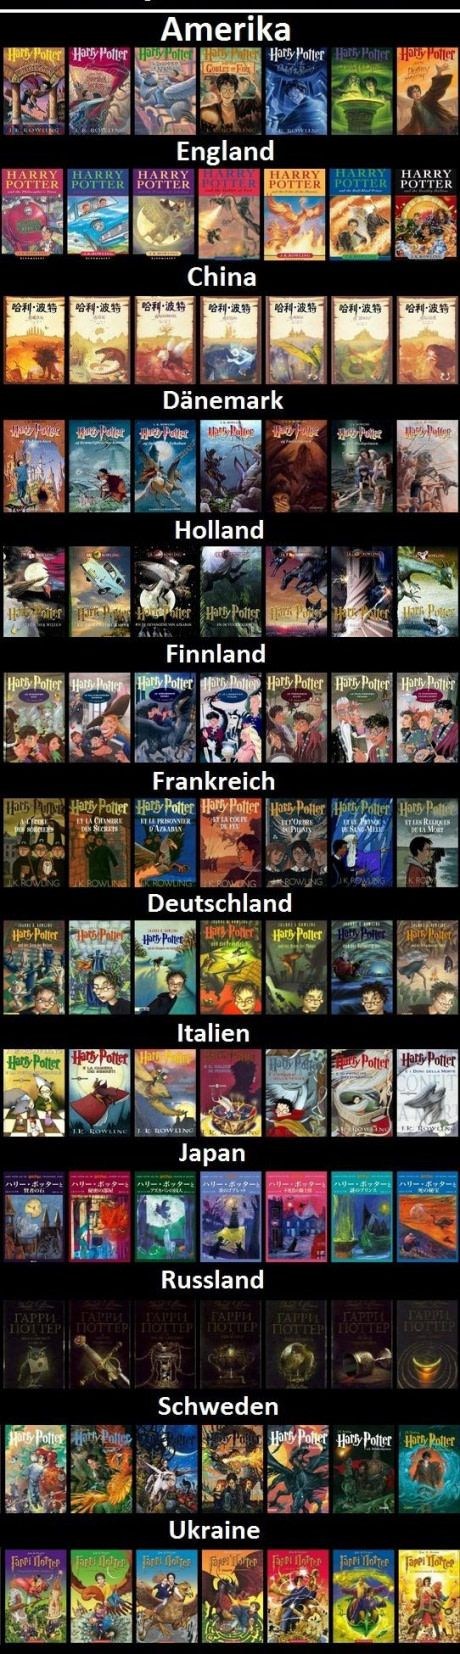 Harry Potter Book Covers From Different Countries What S Your Favorite Harry Potter Book Covers Harry Potter Pictures Harry Potter Books